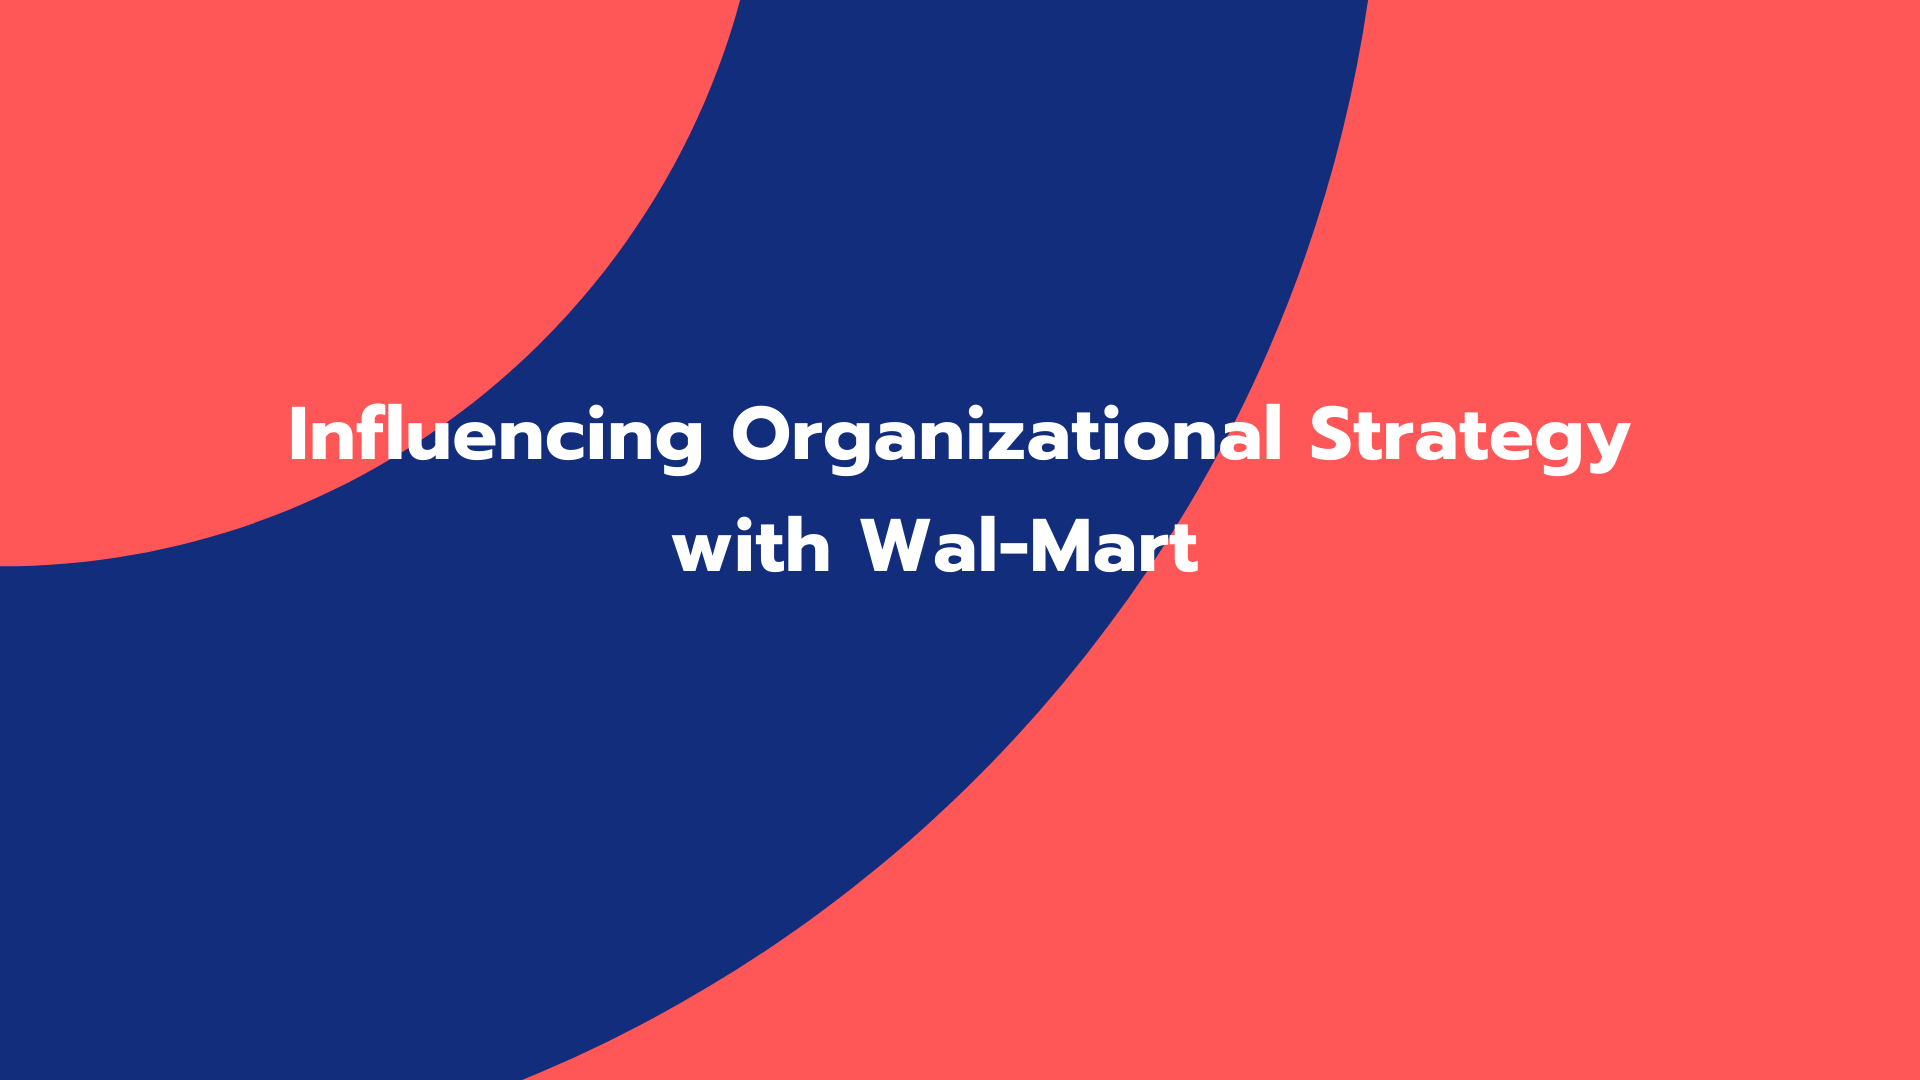 Influencing Organizational Strategy with Wal-Mart